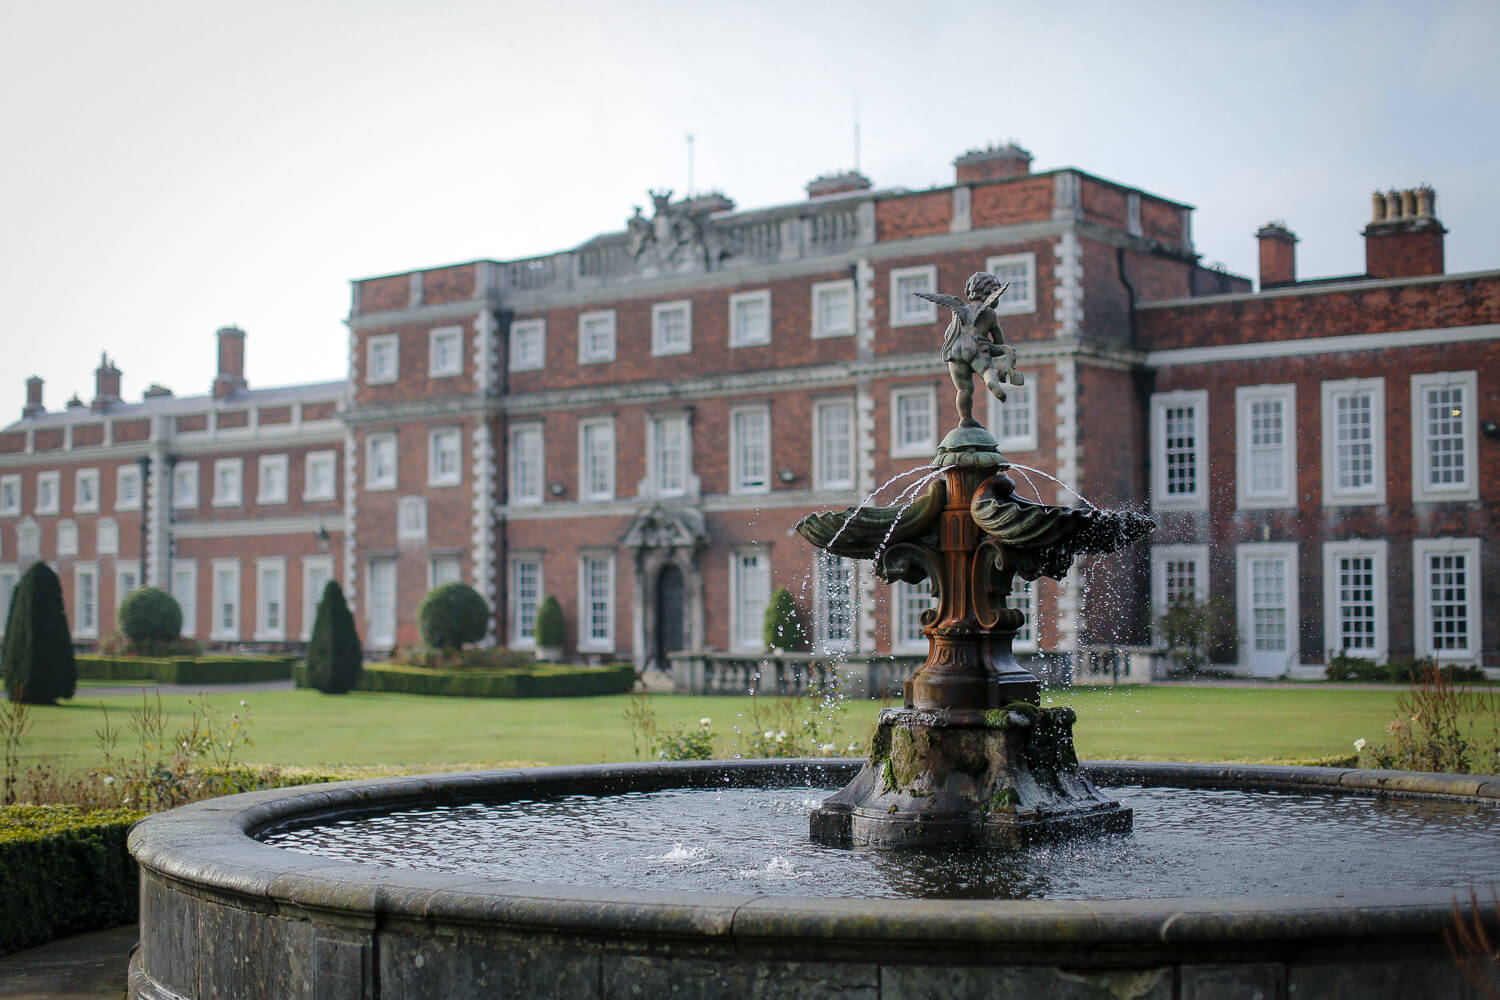 water fountain and Knowsley hall in background